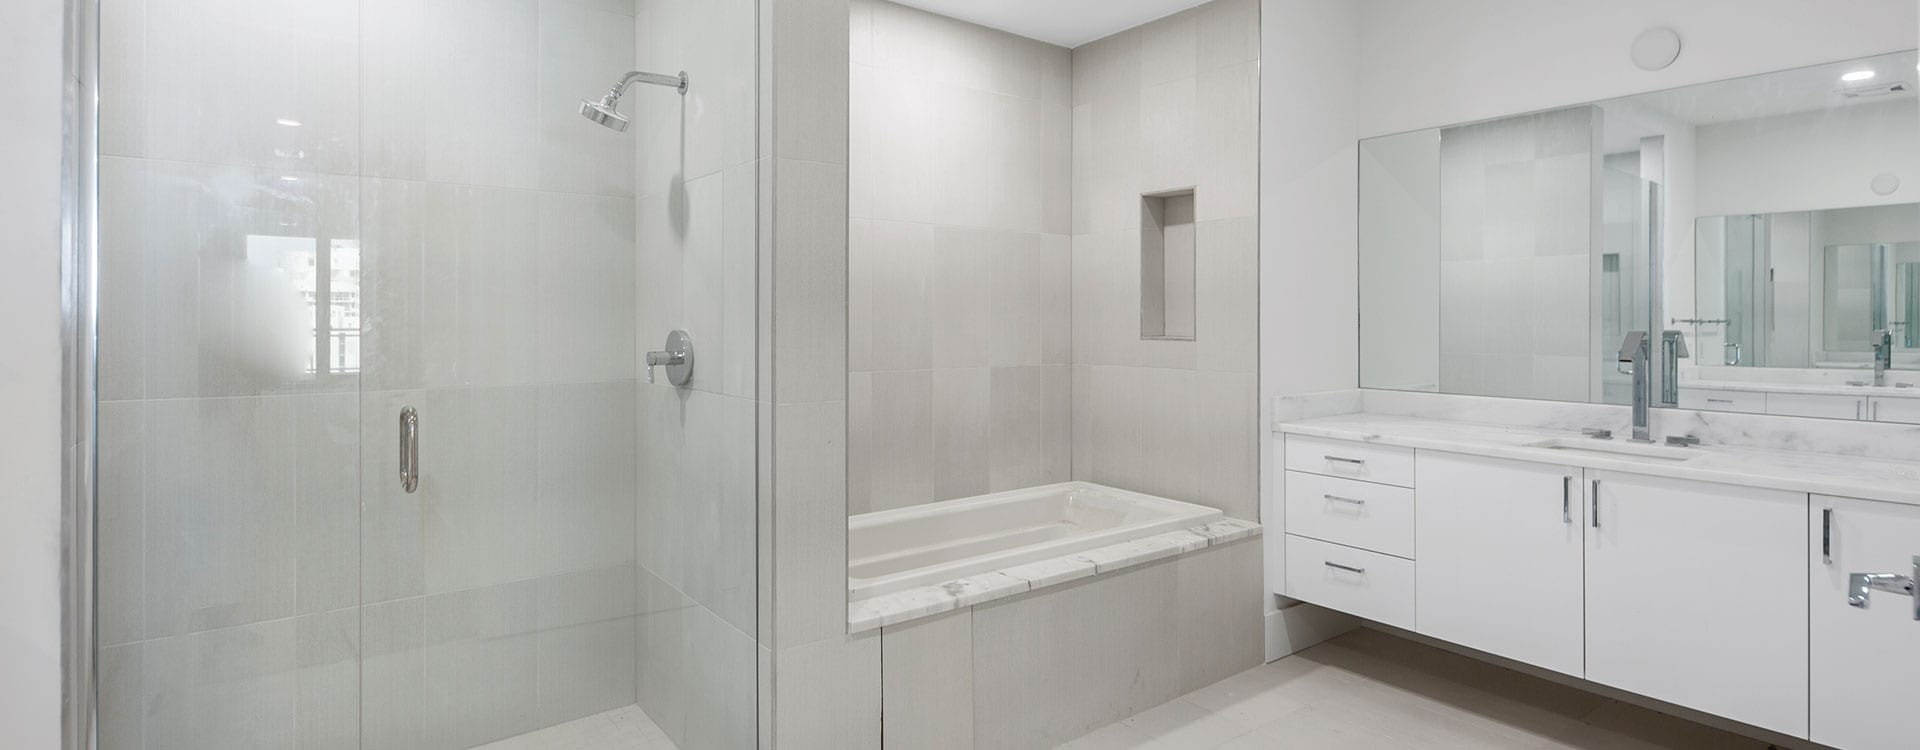 BLVD Sarasota Residence 1102 Bathroom with a soaking tub, walk-in shower and dual sinks